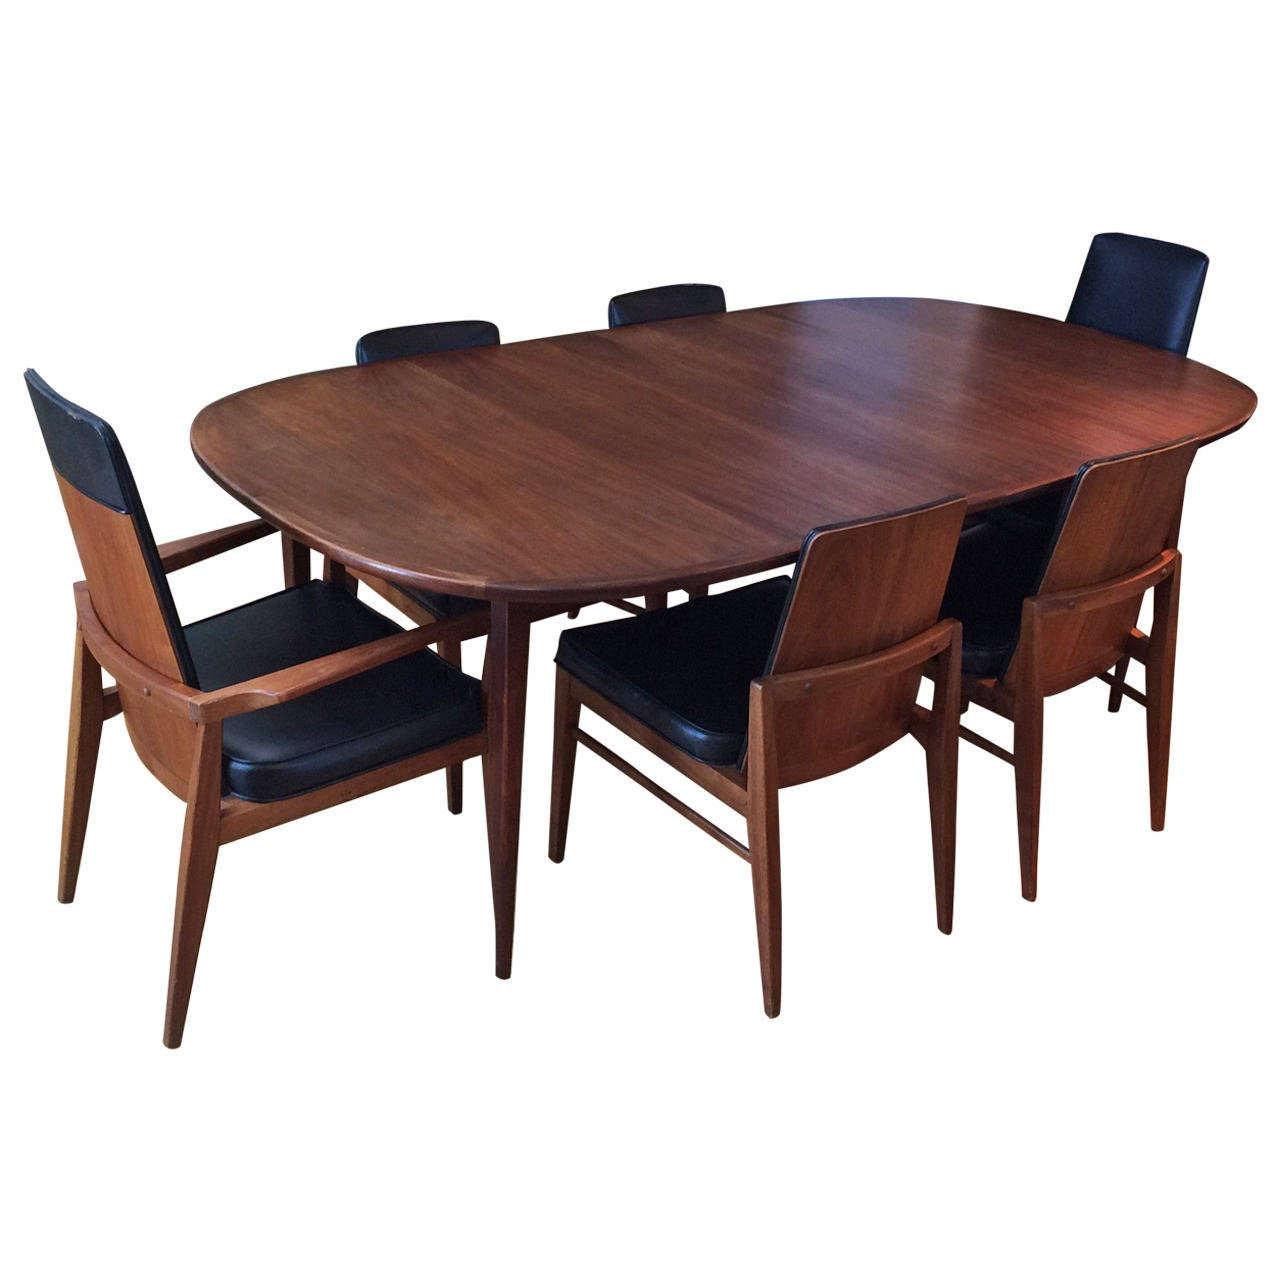 Mid Century Dining Room: Mid-Century Modern Walnut Dining Set At 1stdibs